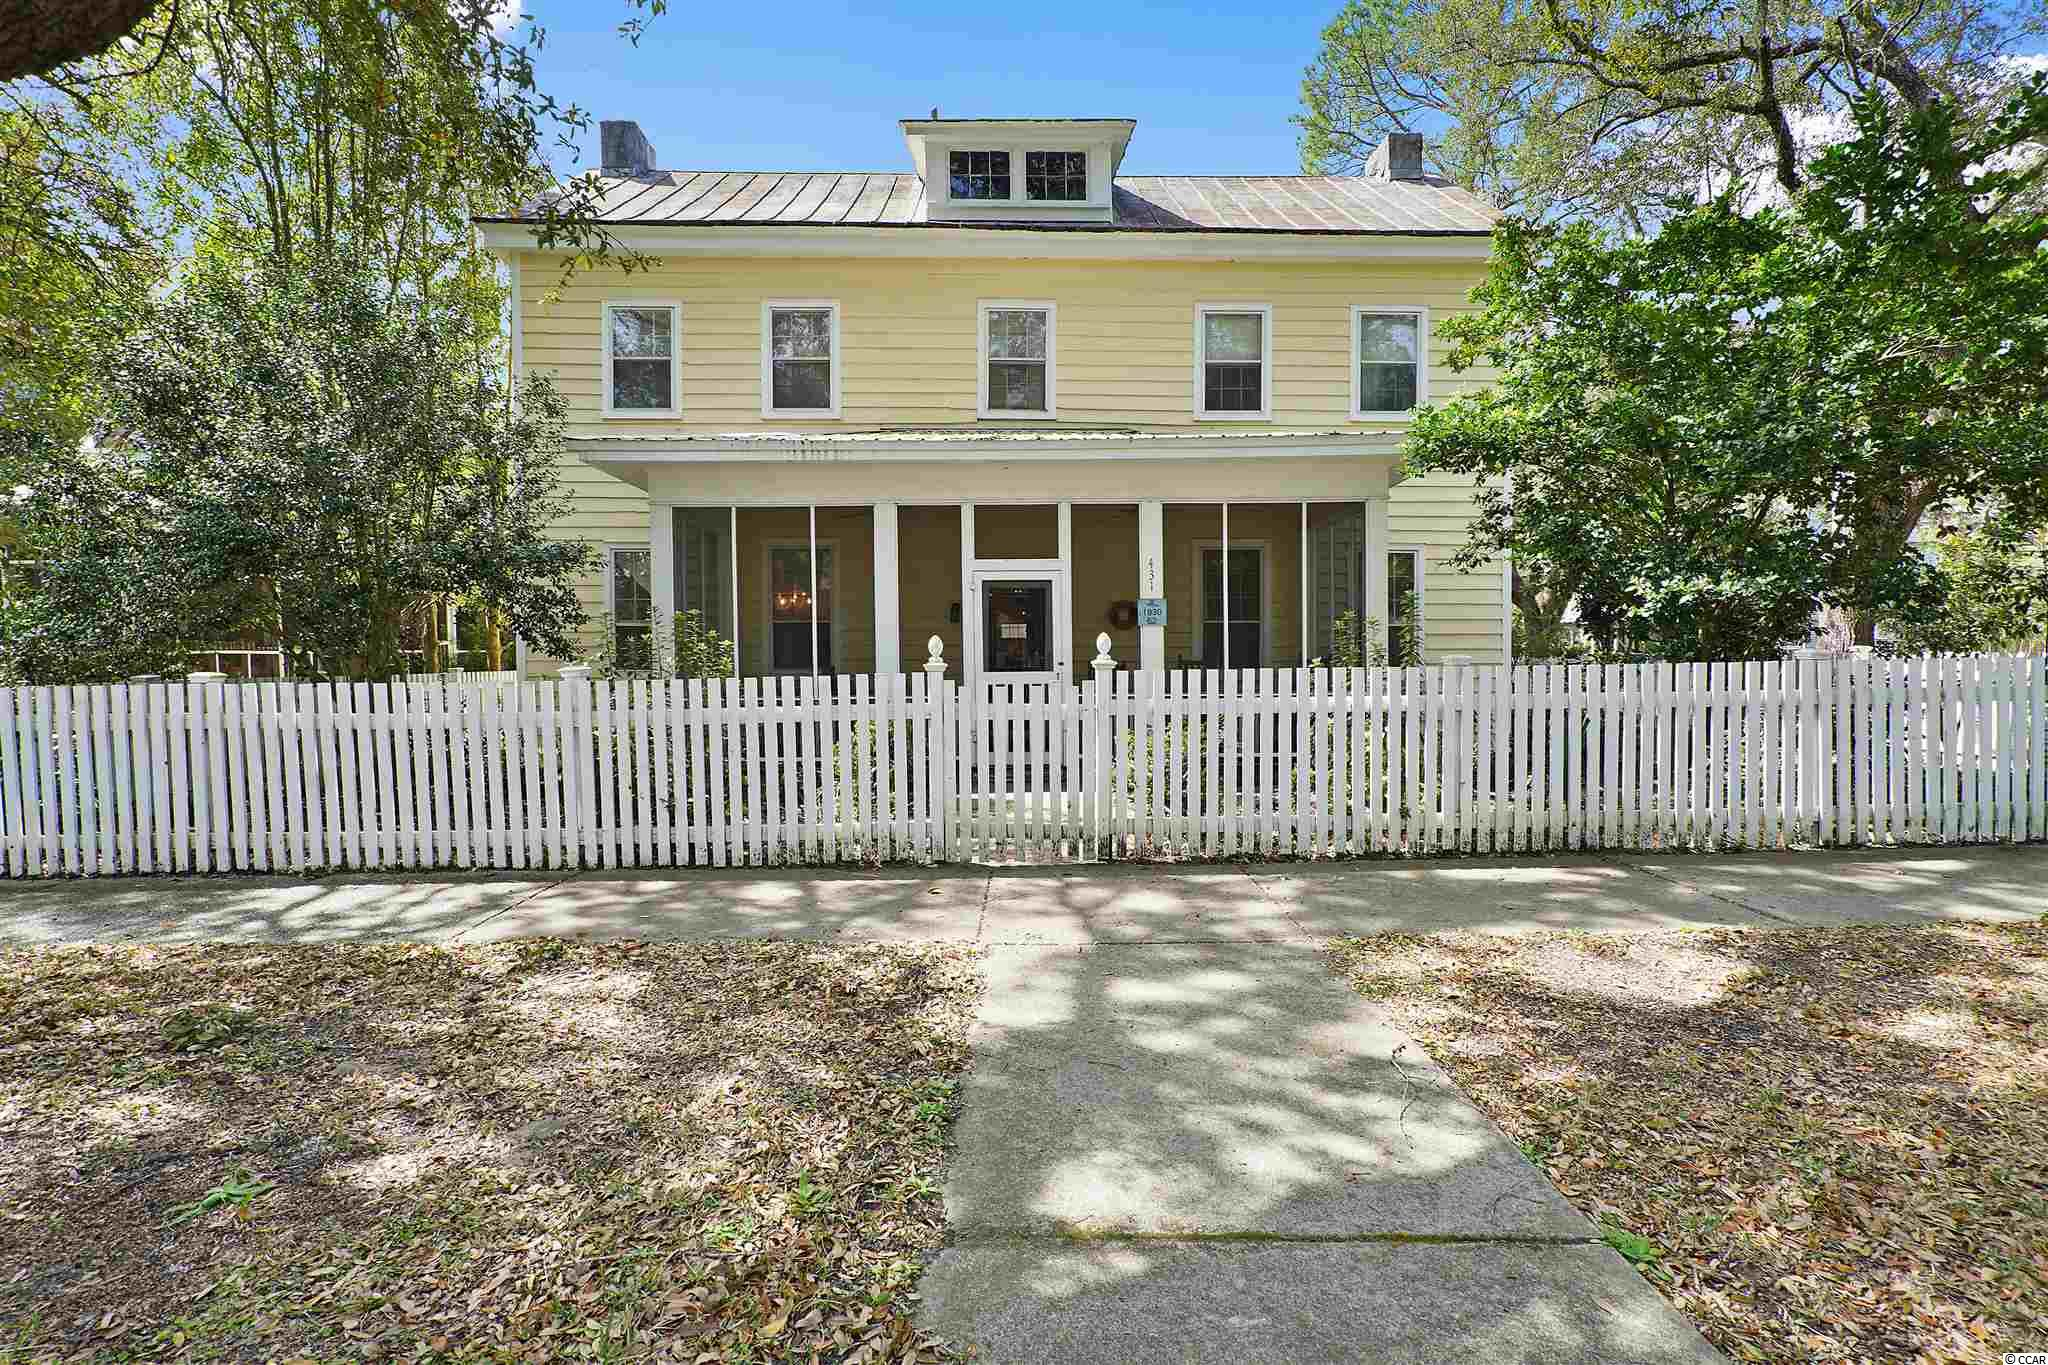 The storybook home you've always dreamed of- white picket fence, large screened in front porch, and live oaks stretching over the sidewalk. This historic property is in a fantastic location at the center of downtown Georgetown- Just 2 minutes from the Marina, and walking distance to numerous shops, and restaurants. Quite a few upgrades were made in 2020, including: New duct work under the home, new hot water heater, new heating system on the second floor, and refinished back driveway. Inside, you have over 2,900 sq ft for your growing family with 5 bedrooms, 4 baths and plenty of space in between. You'll fall in love with the crown molding detail, original hardwood floors, and charming brick fireplaces. The first floor conveys a formal dining room, large living space, a spacious eat-in kitchen, a flex room currently used as a home office, and one bedroom and full bath. On the second floor, there are four spacious bedrooms and three separate bathrooms. This home is full of character, history, and in a great place to raise your family. It won't stay on the market for long, so come see it today!